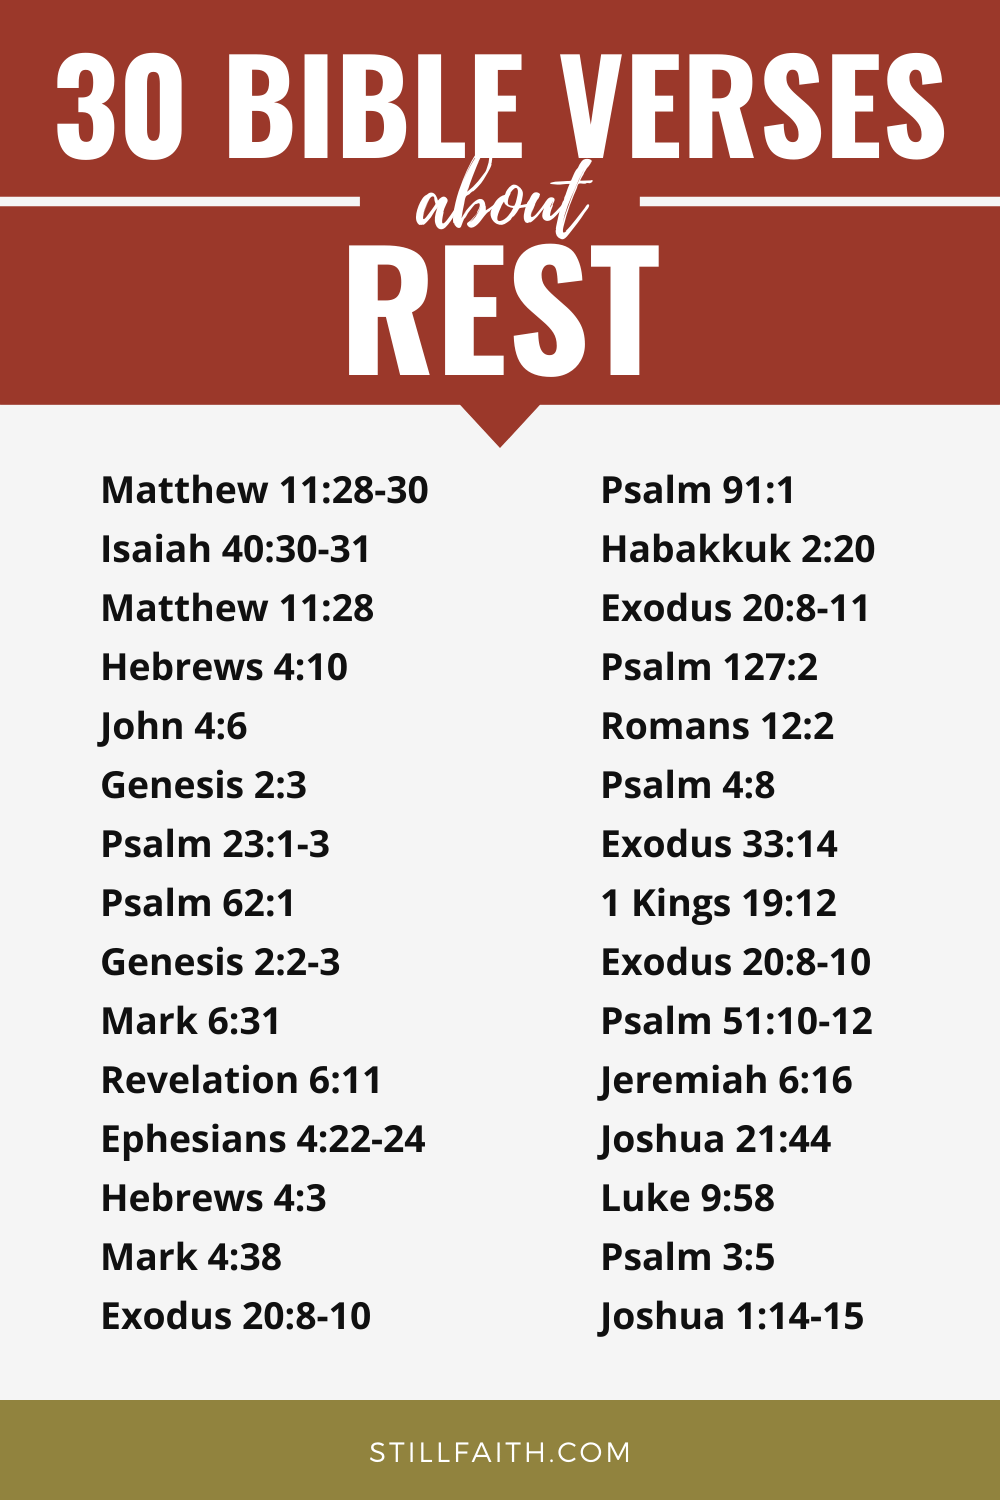 206 Bible Verses about Rest